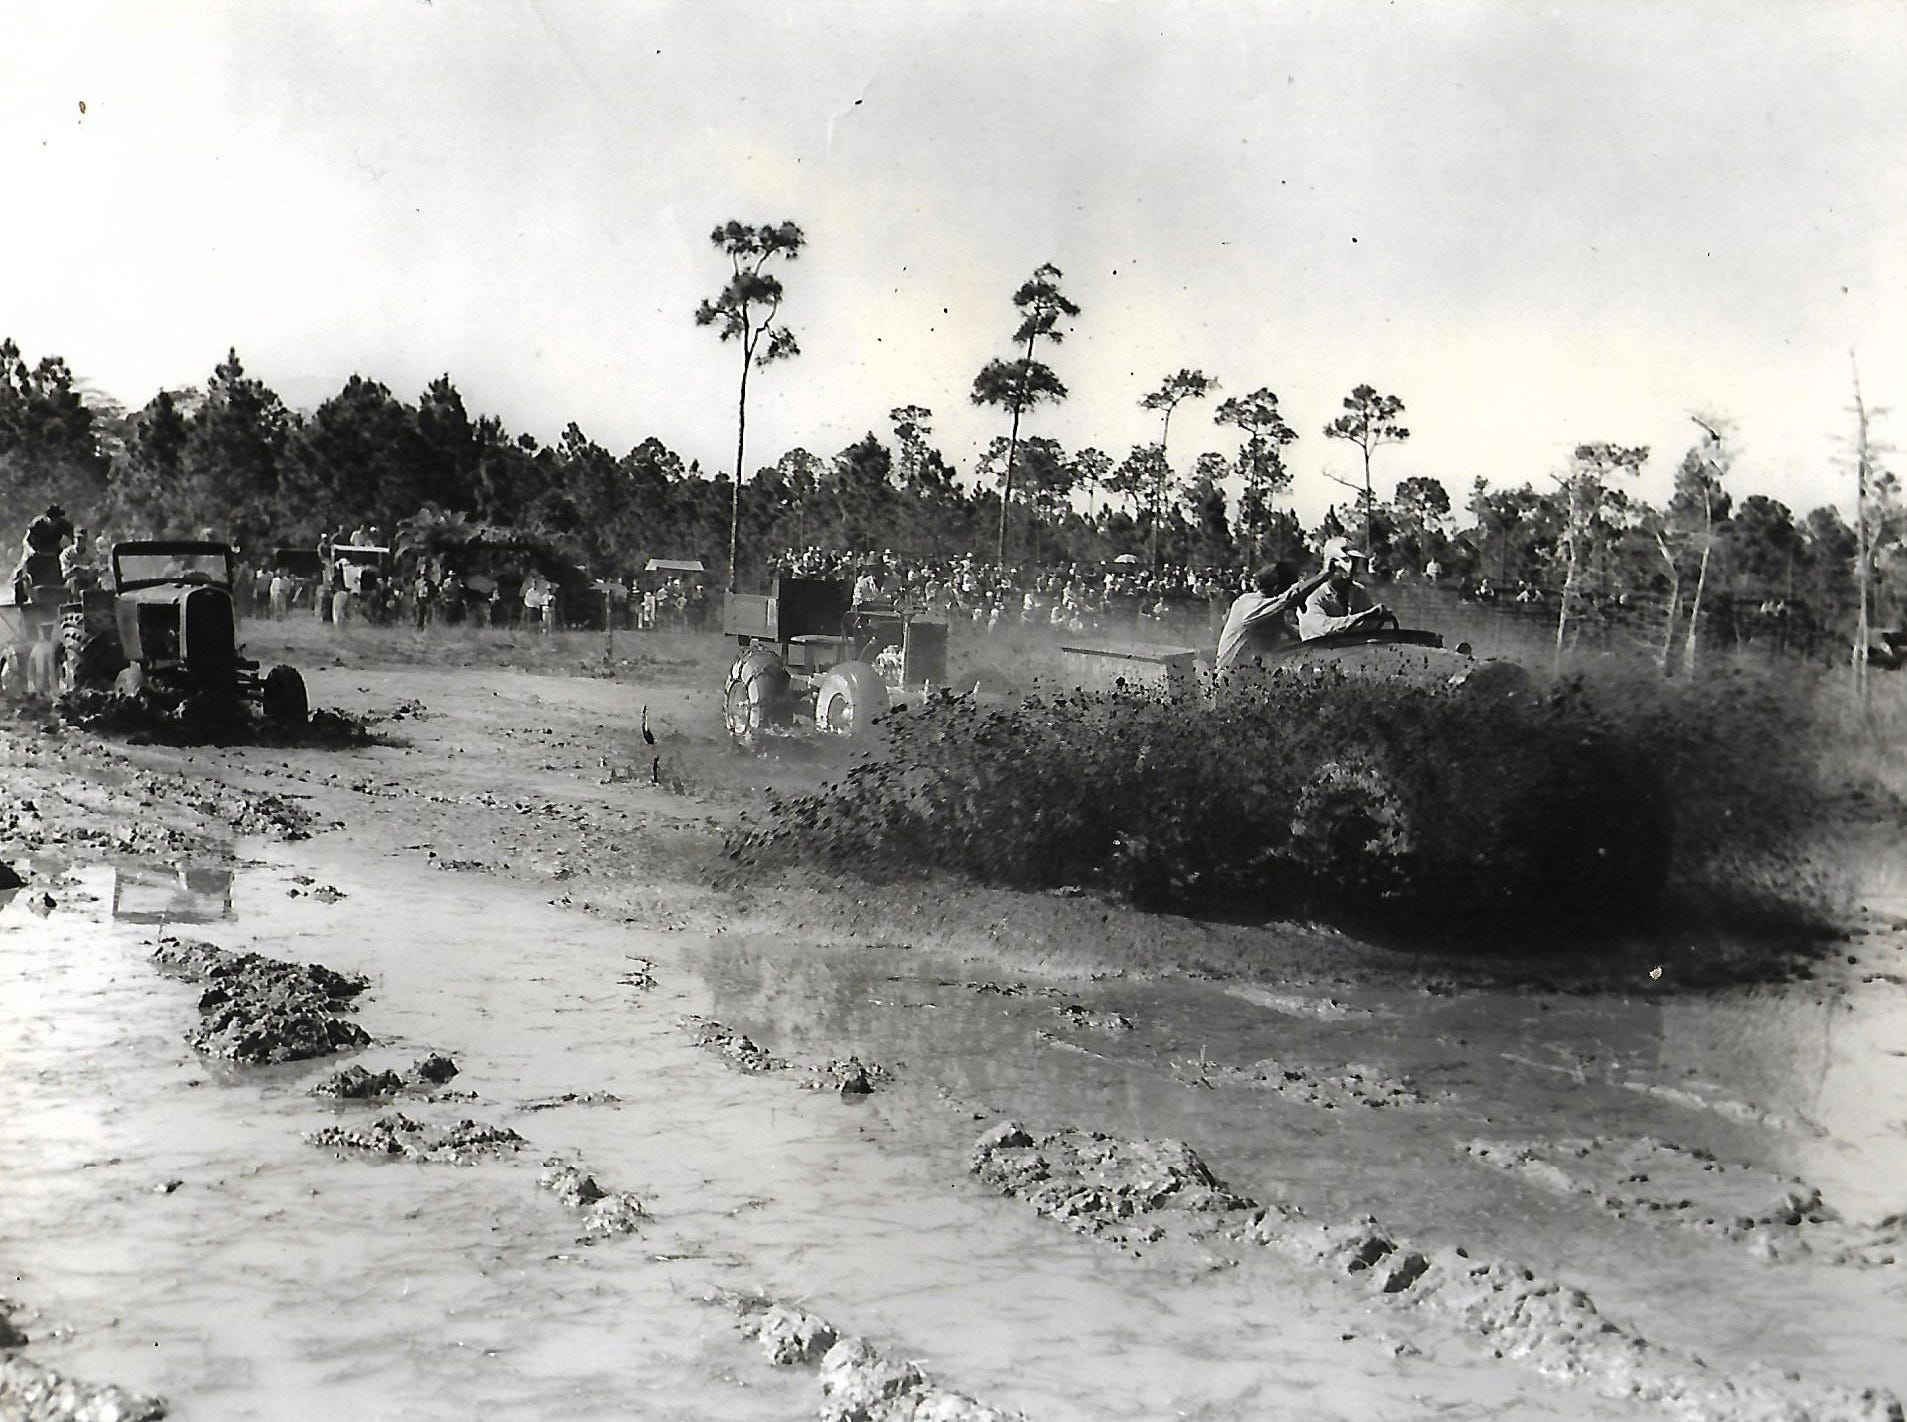 Robert Walker Sr. wins the Swamp Buggy Races in 1956. Walker, born on Marco Island in 1921, celebrated his 98th birthday on Sunday, Jan. 6 at his home in Cross City, Florida.